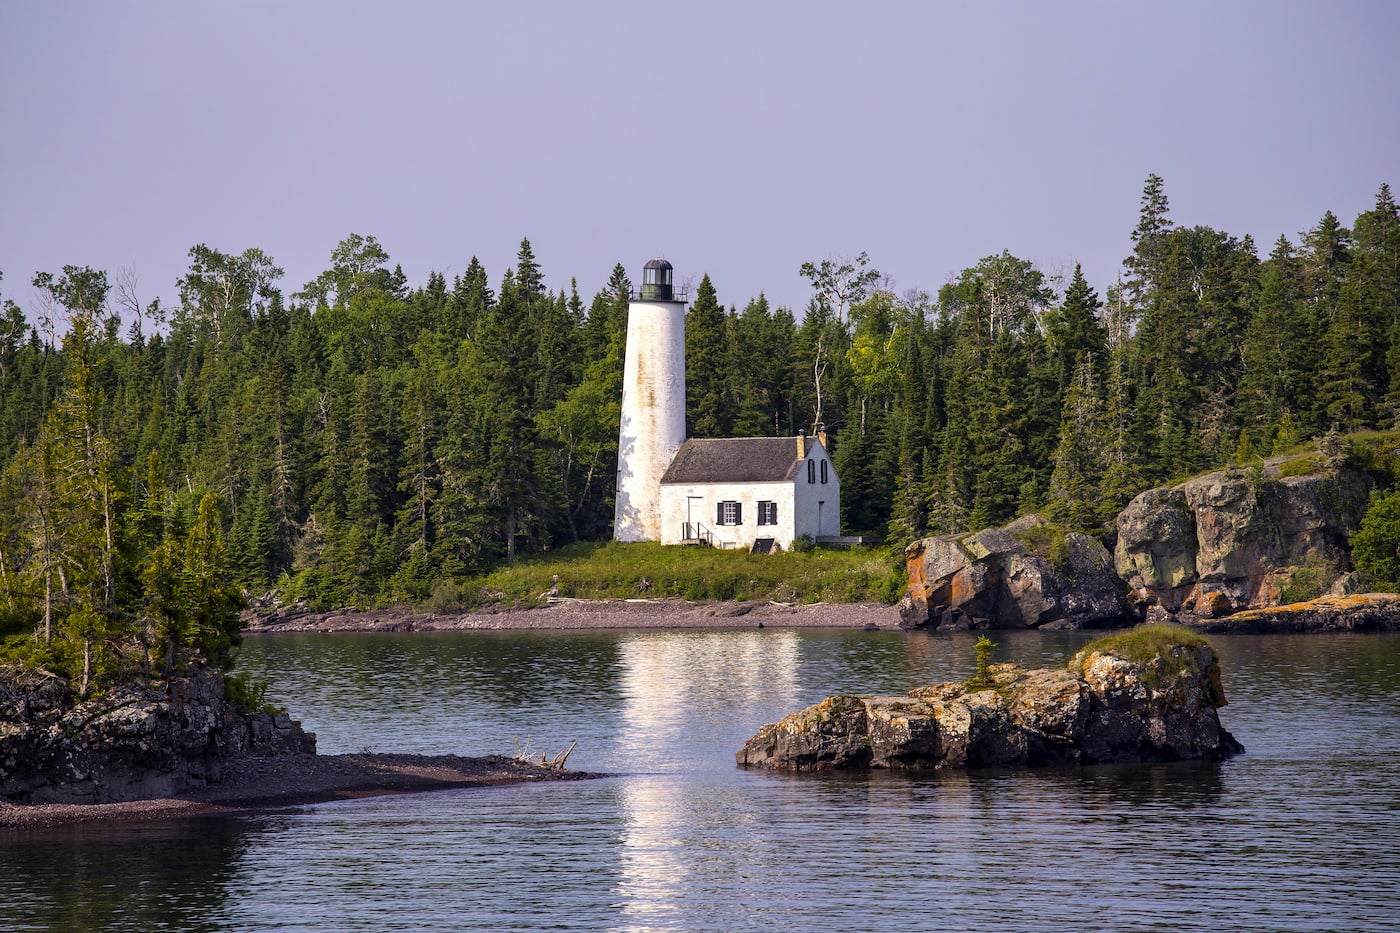 White lighthouse on the coast of a forested island.